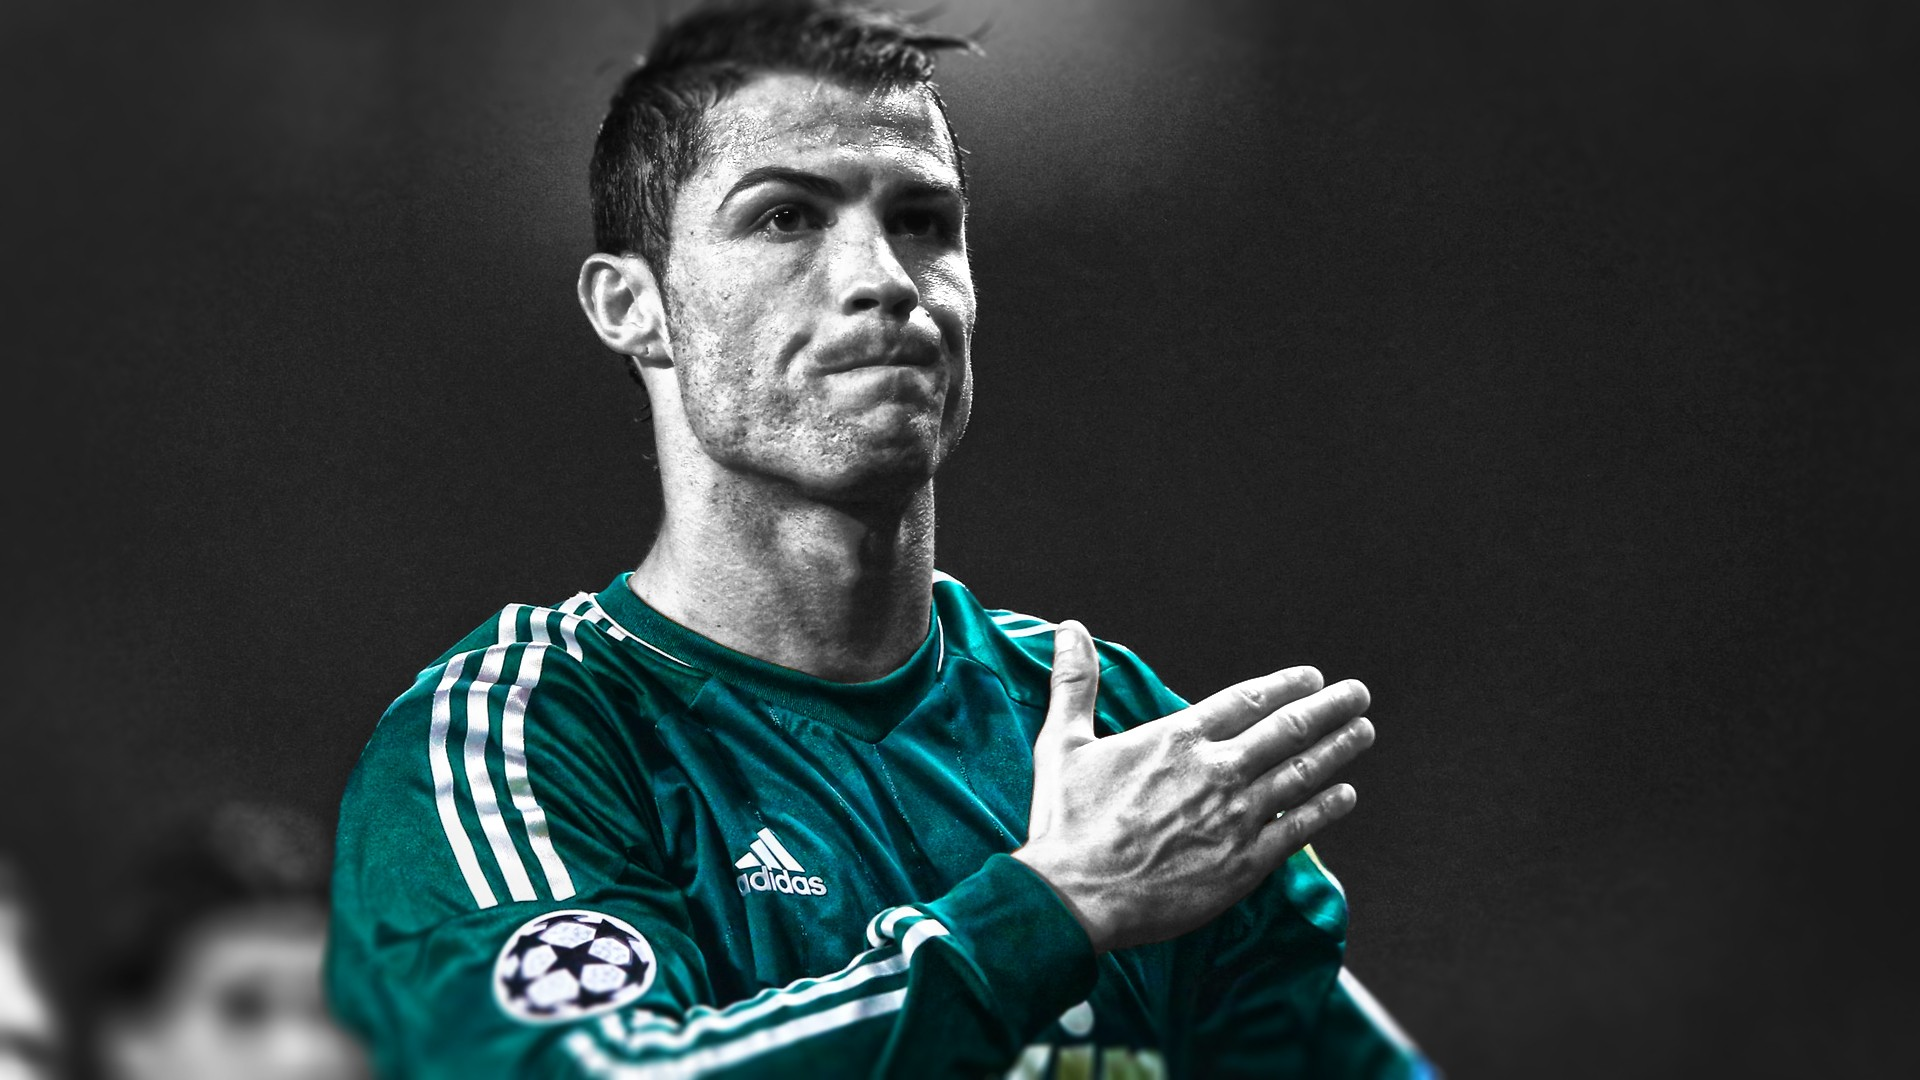 Cristiano Ronaldo HD Wallpapers 2015 Right Click Save Target As 1920x1080